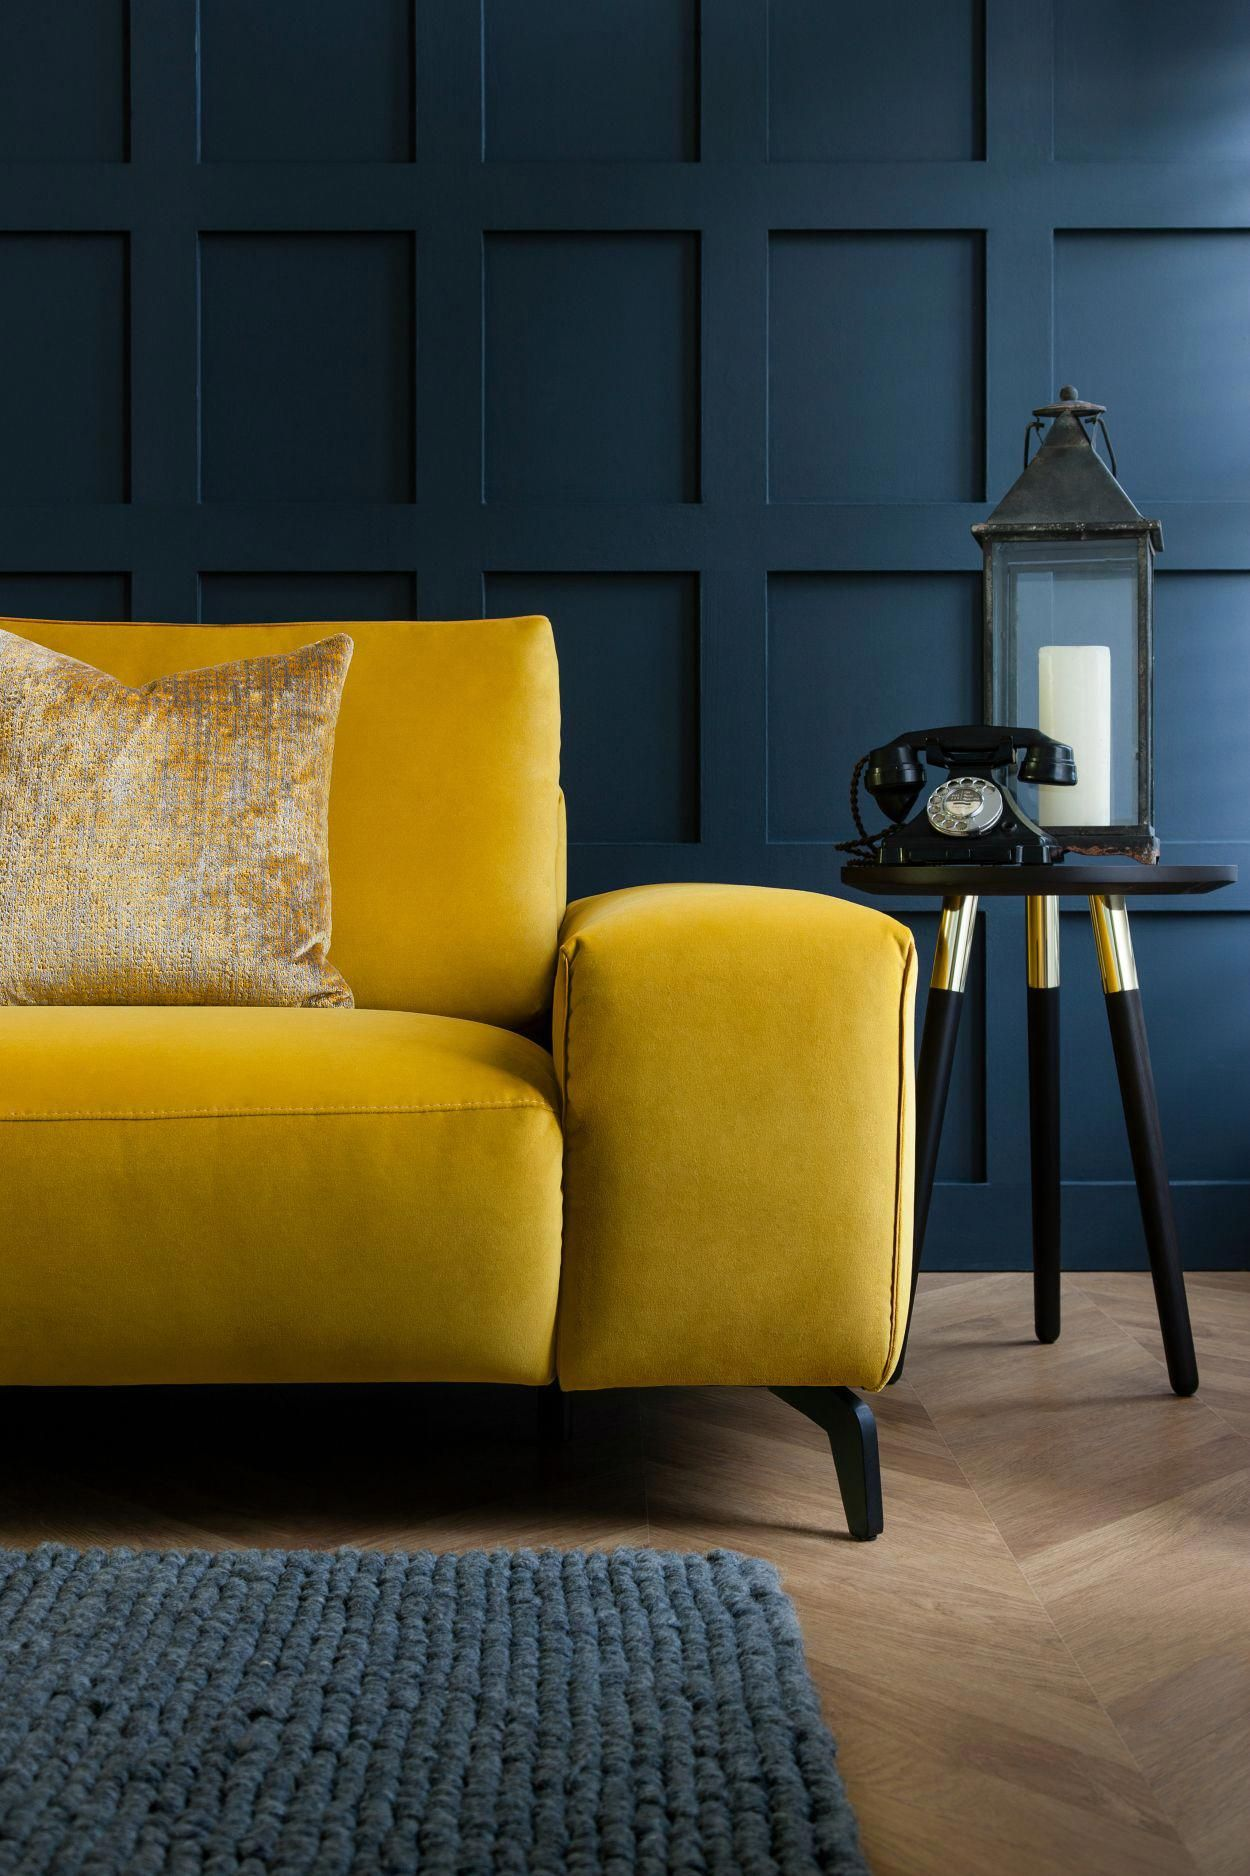 Rom Luxury Sofa Collections Feature Customisable Power Recliners With Stylish Ergonomic Sofa Designs With Every Order Made To E Paris France Travel Yello